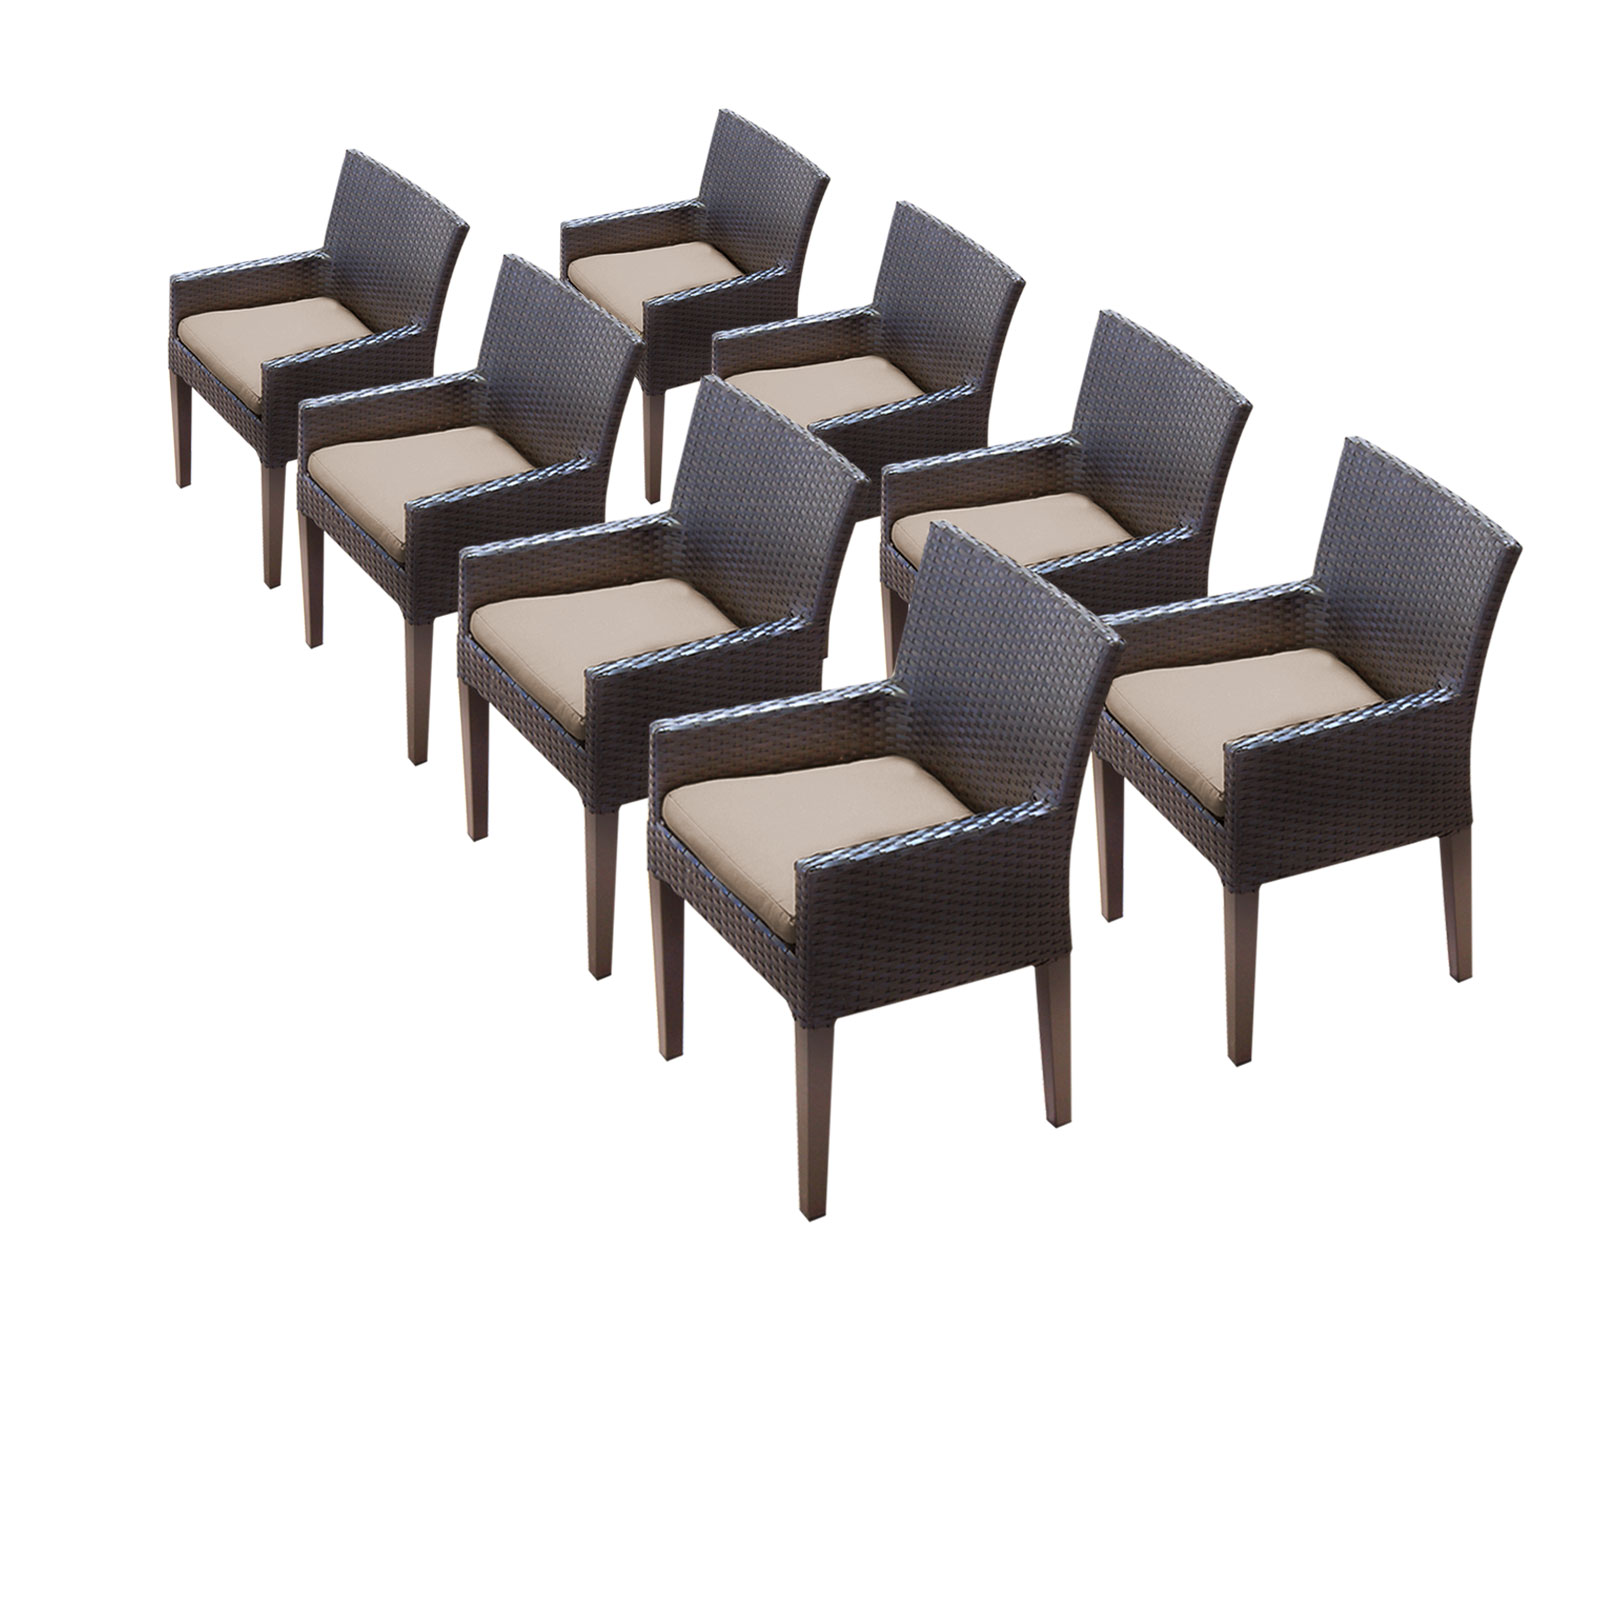 8 Pluto/Saturn Dining Chairs With Arms